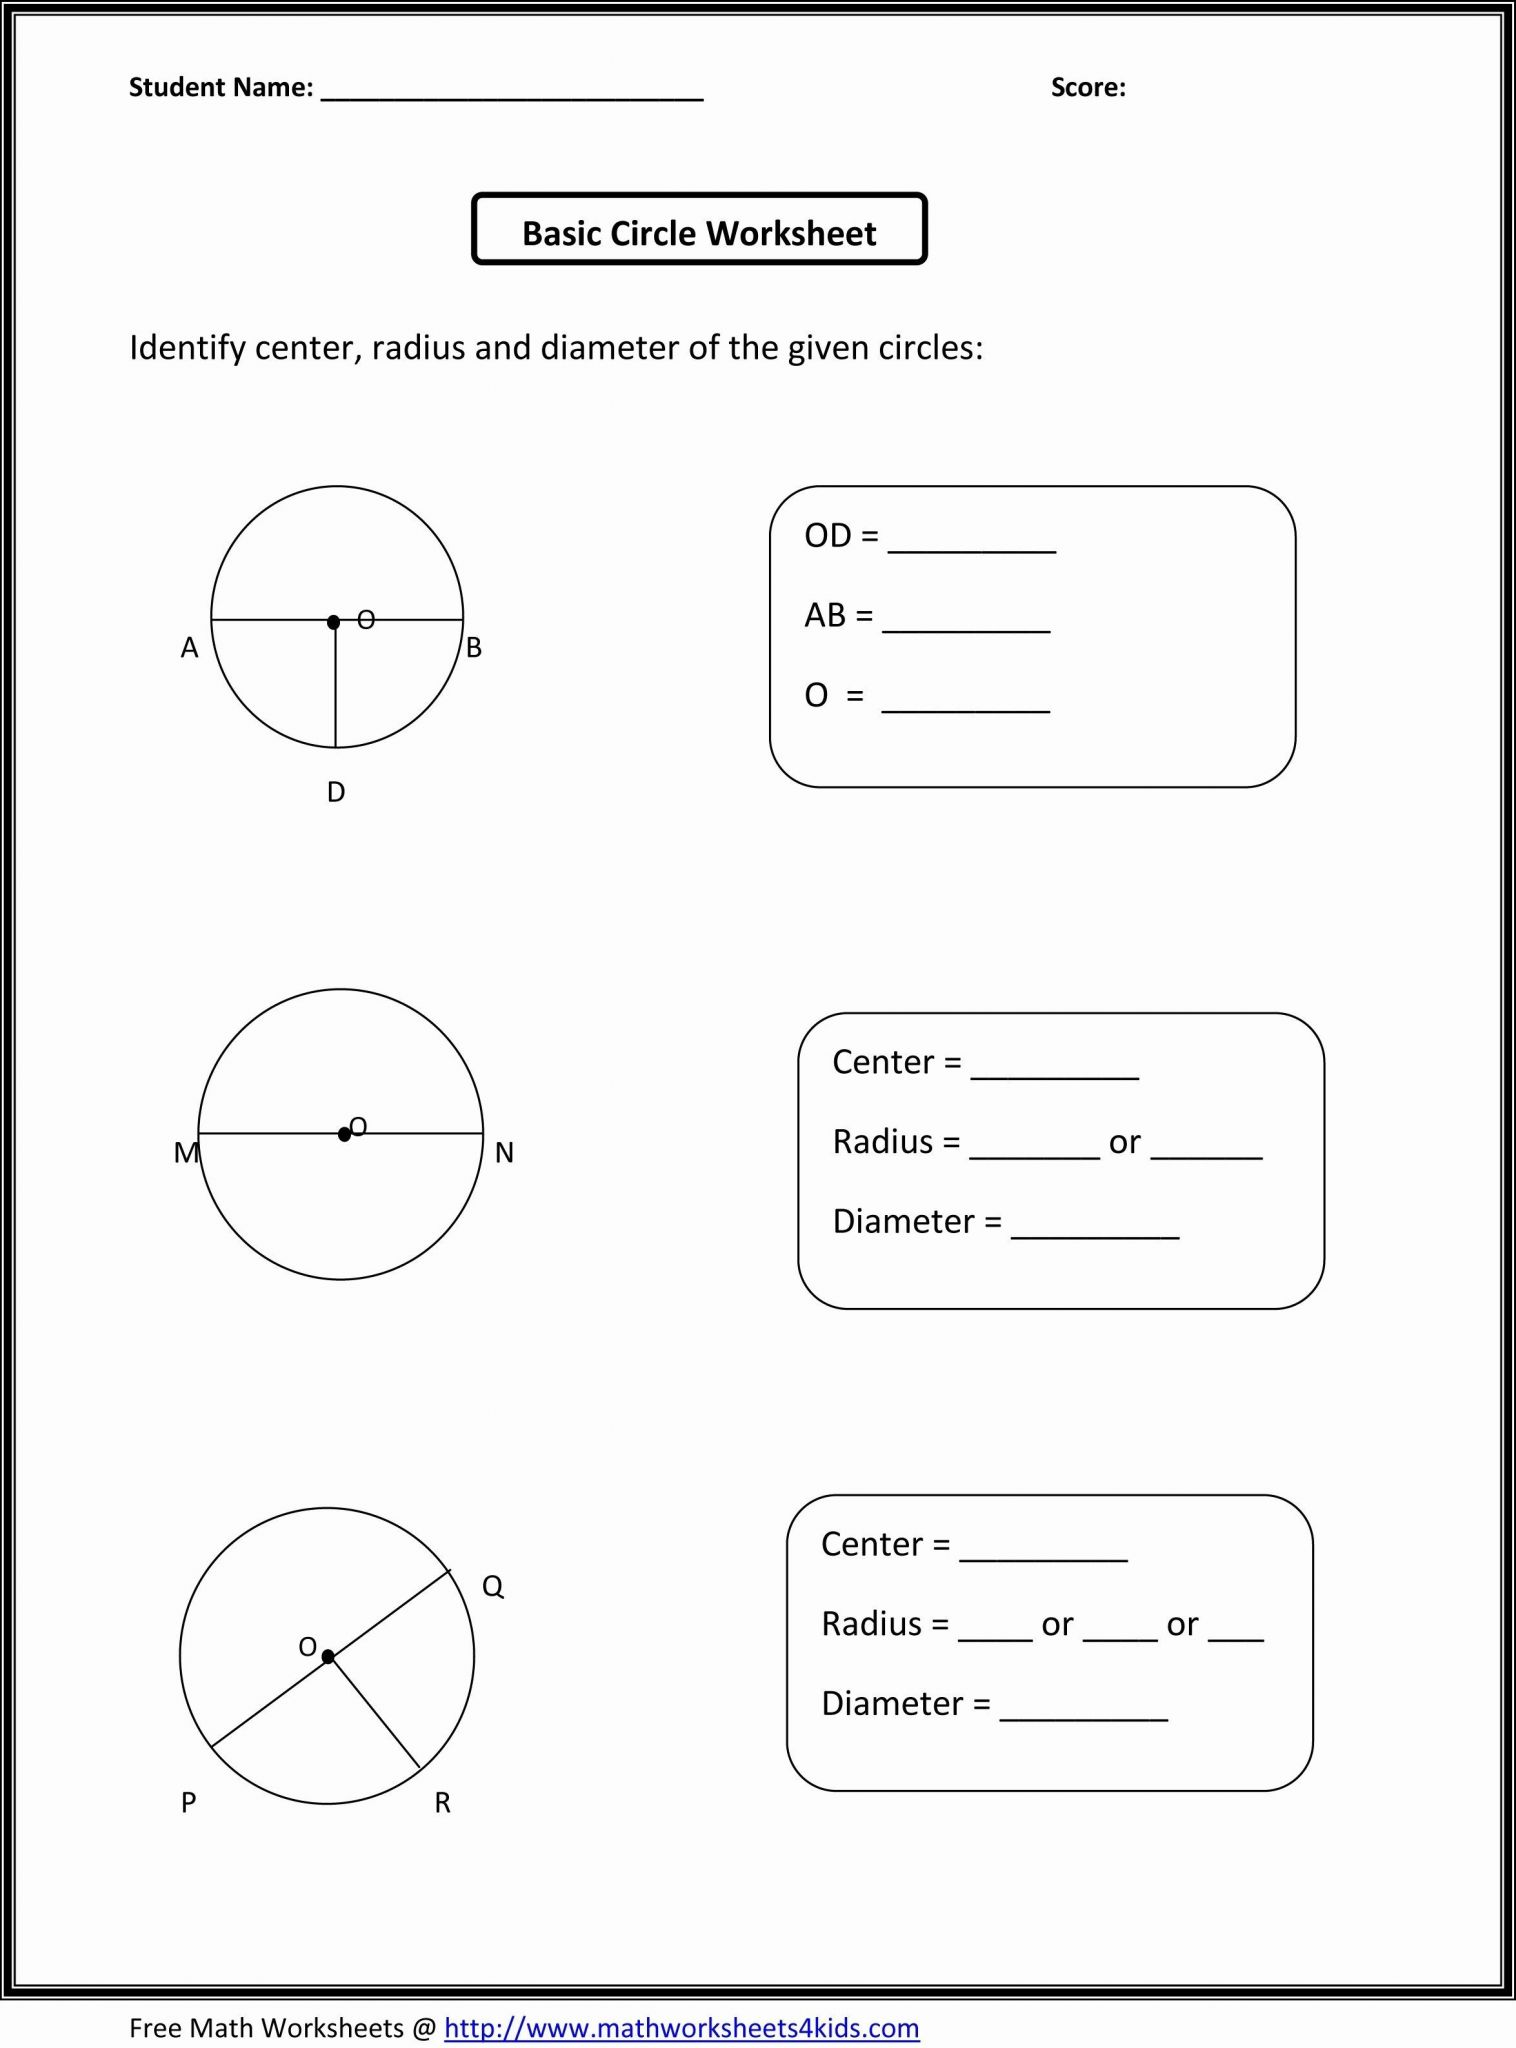 Dna Mutations Practice Worksheet Conclusion Answers